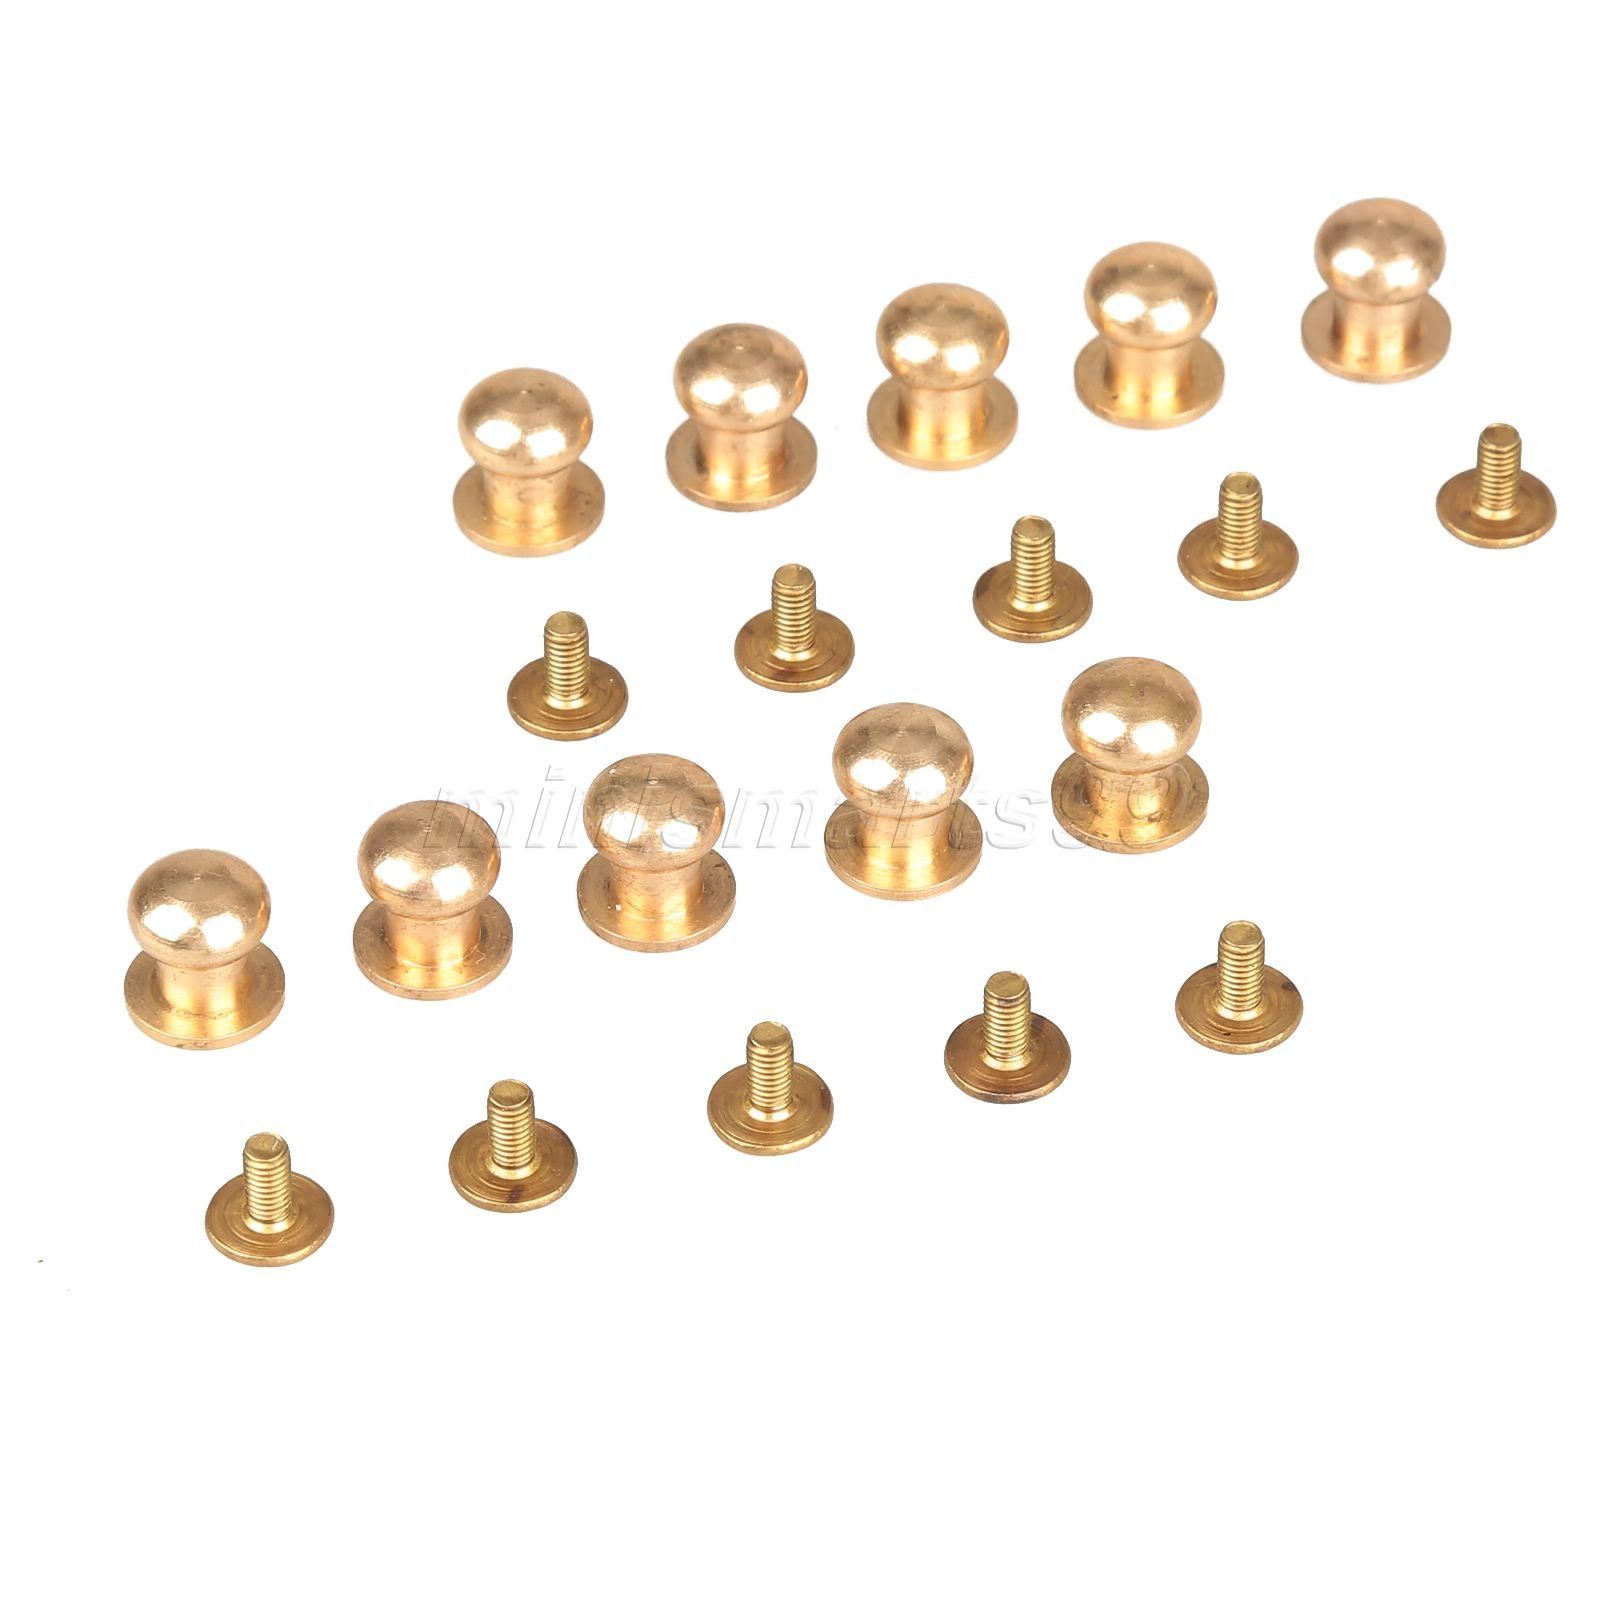 Cacys Store - 10pcs 7mm Solid Brass Belt Bag Screw Rivet Knob Round Button Chicago Screw In Button Studs Leather Craft Accessories